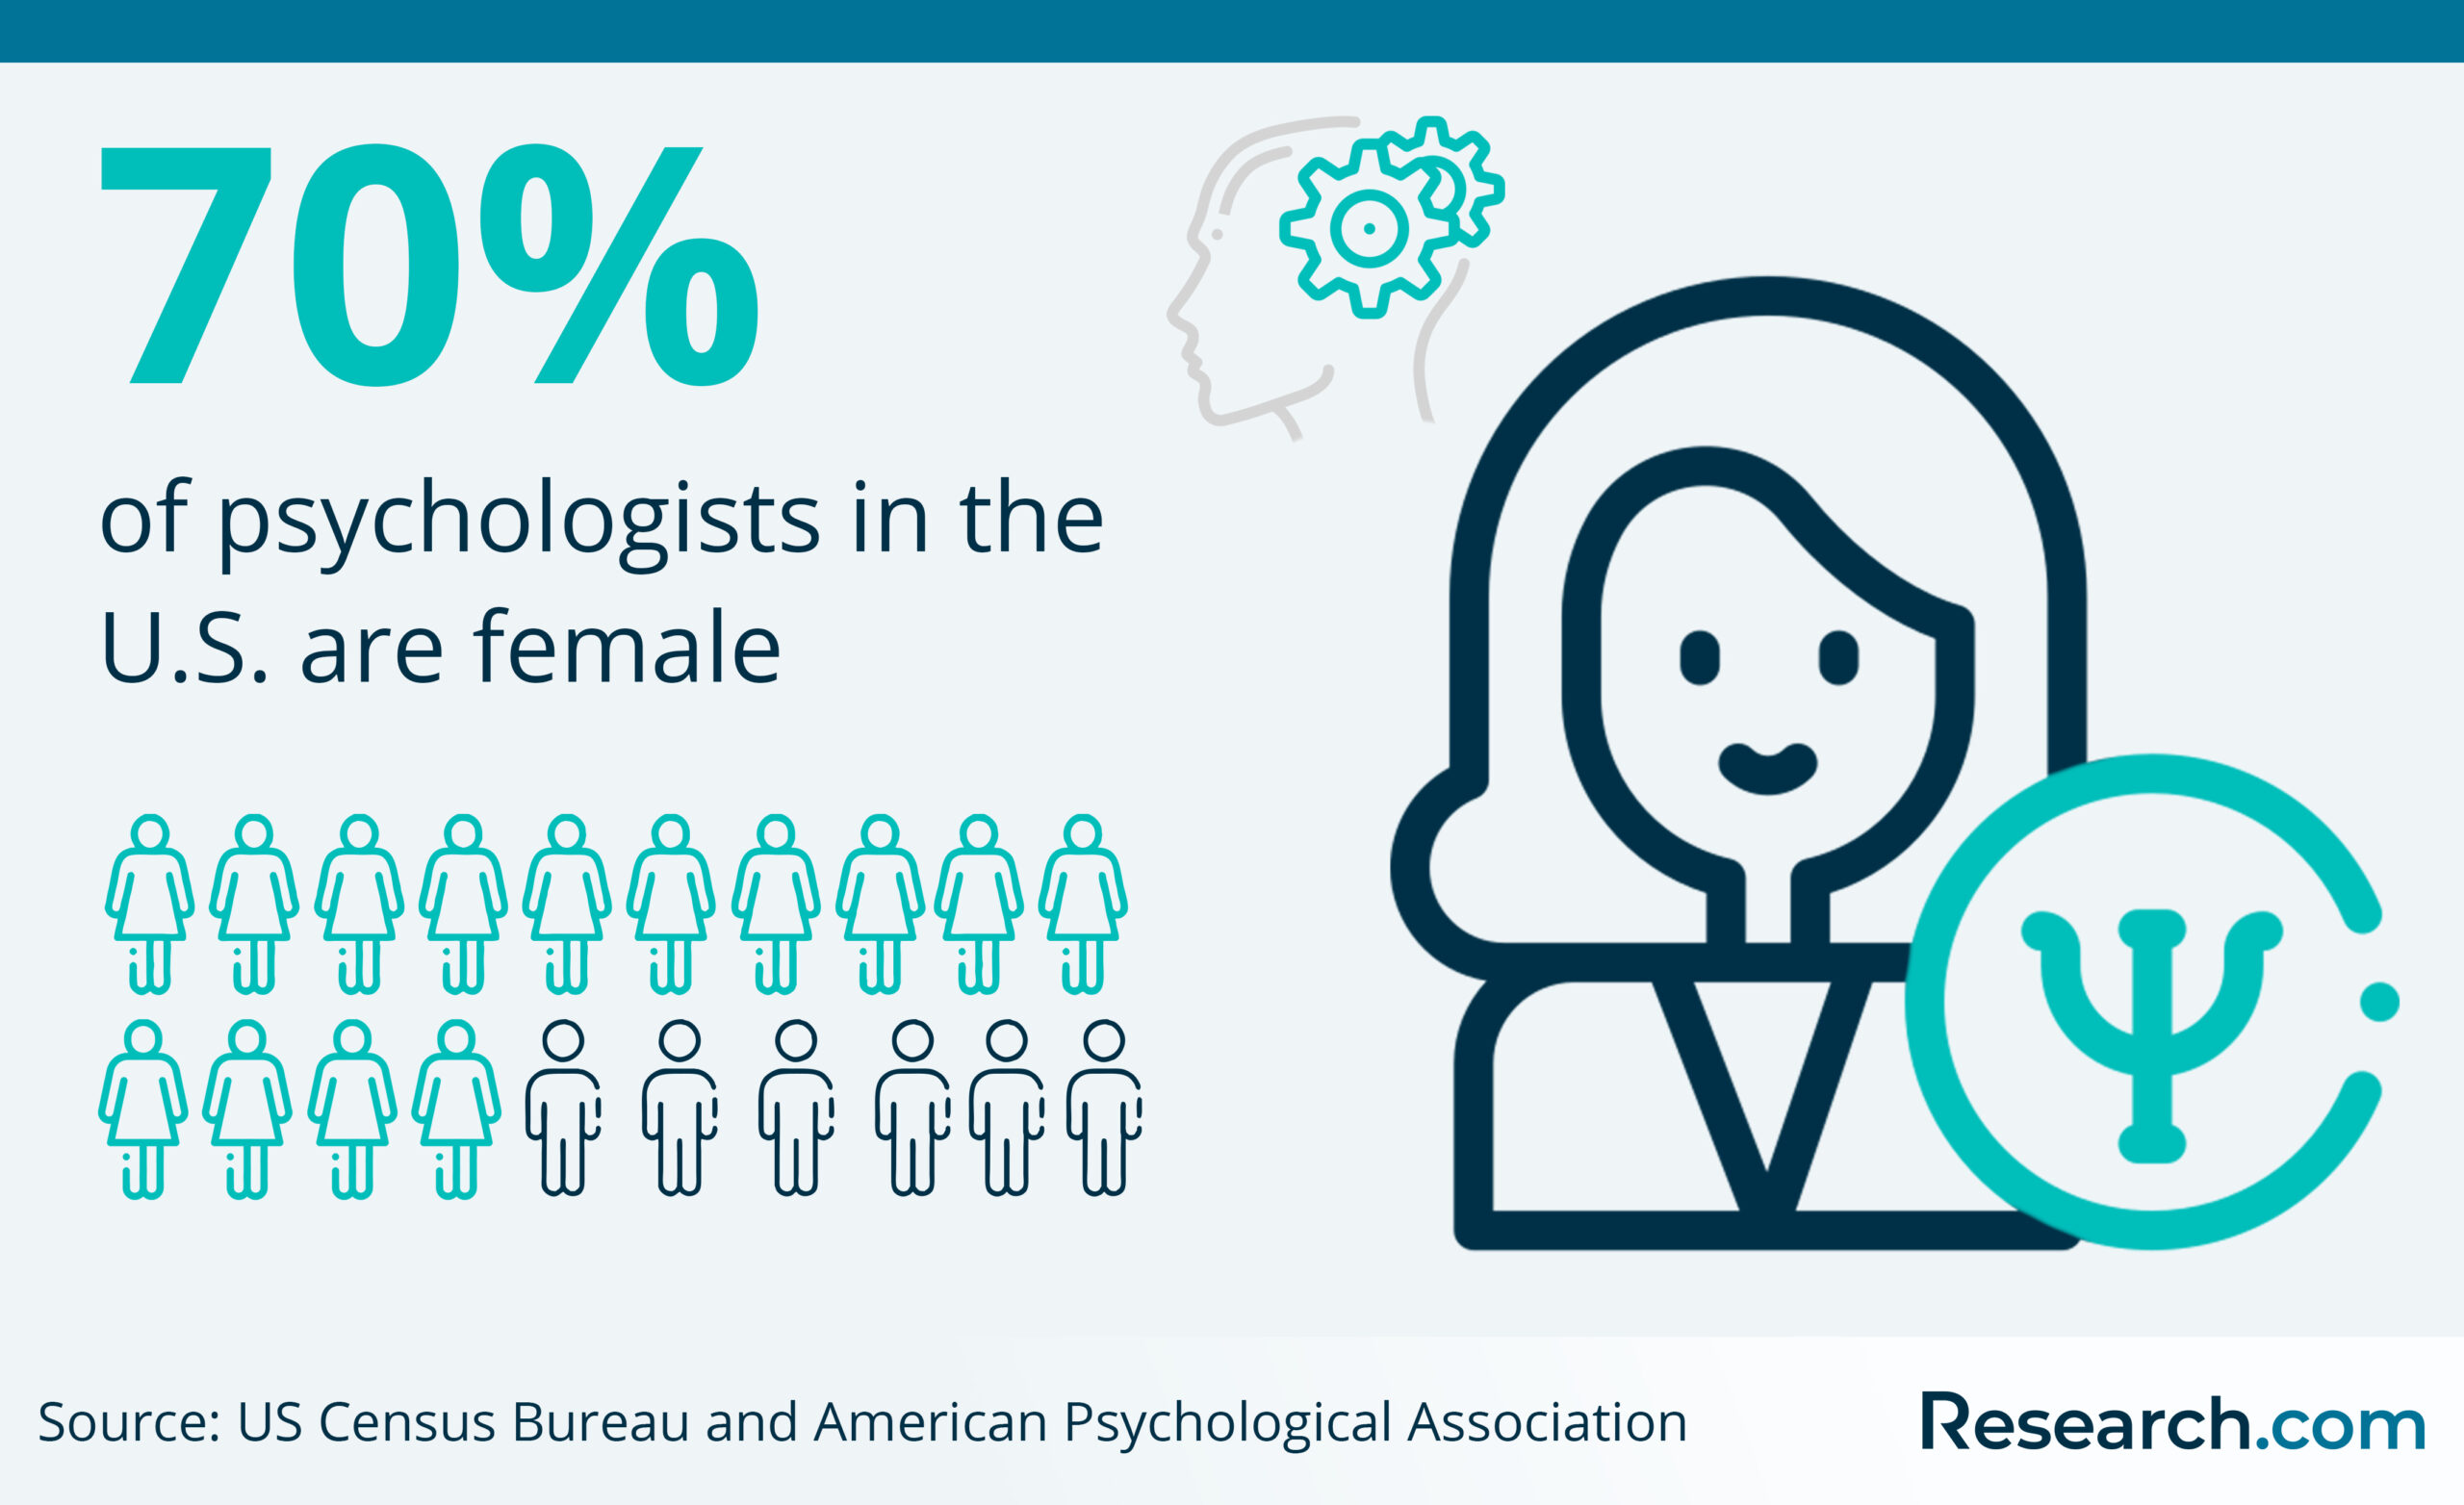 share of psychologists who are female in the US